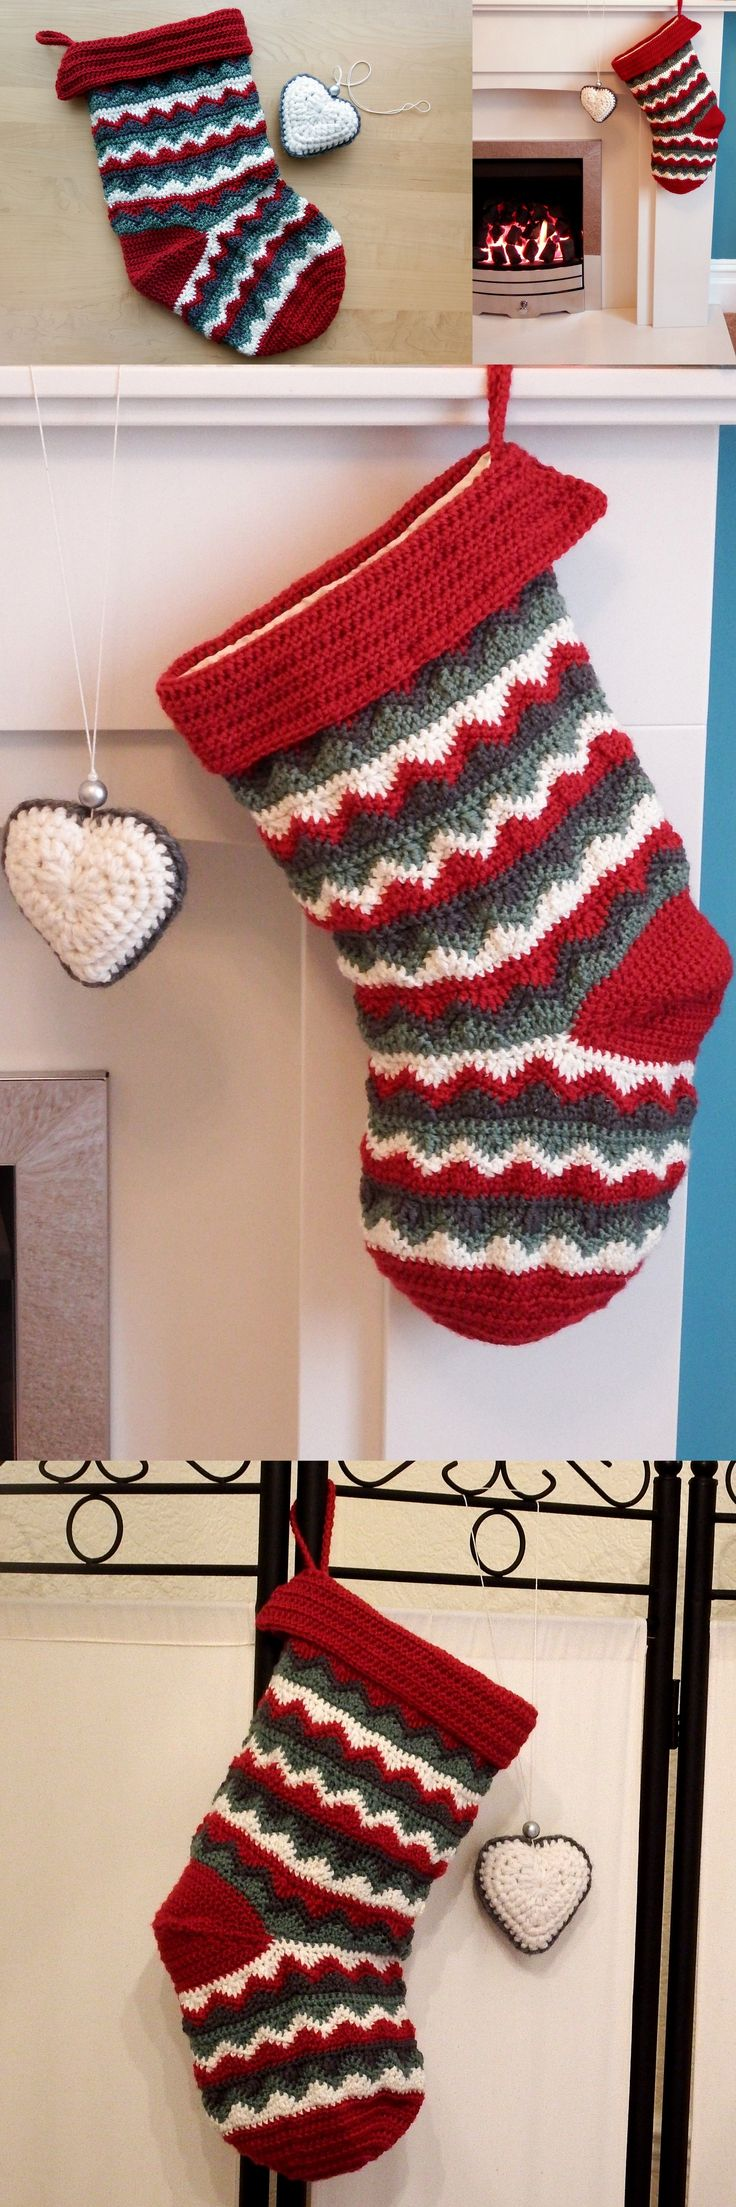 Make My Day Creative: Home made zigzag Christmas Stocking – free crochet pattern by Esther Chandler